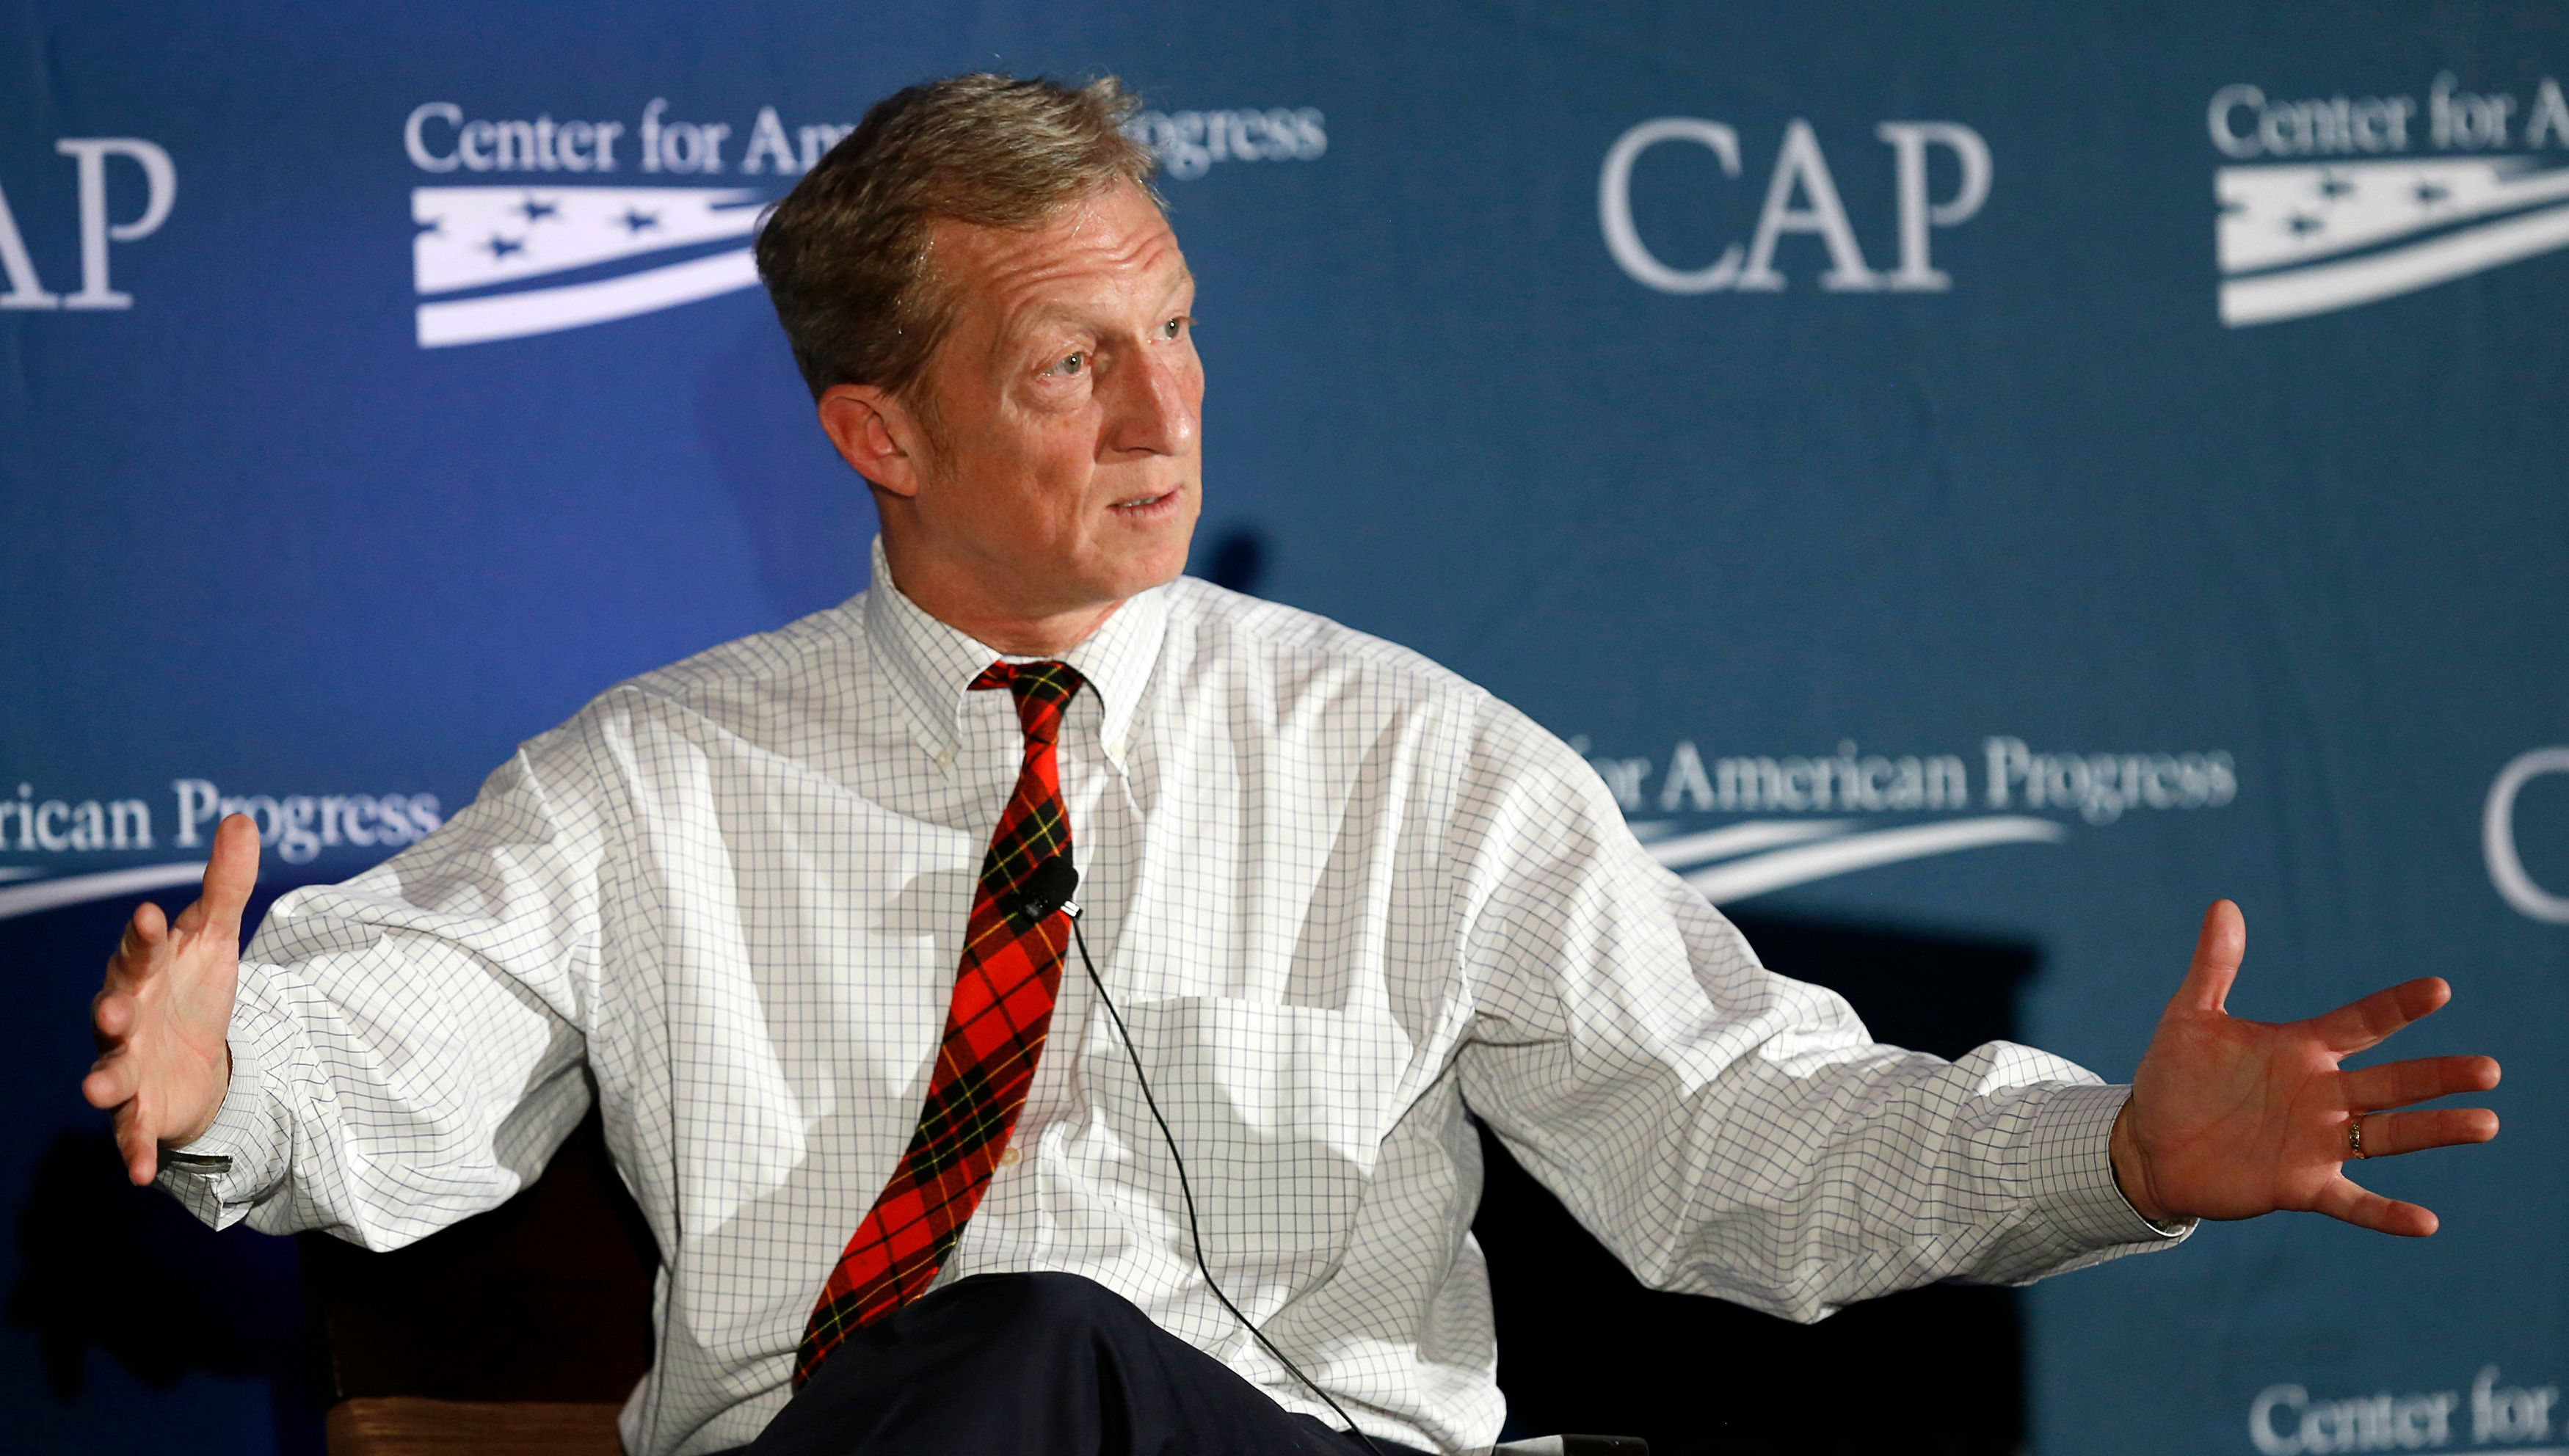 Investor, philanthropist and environmentalist Tom Steyer speaks at the Center for American Progress' 2014 Making Progress Policy Conference in Washington November 19, 2014. REUTERS/Gary Cameron  (UNITED STATES - Tags: POLITICS)